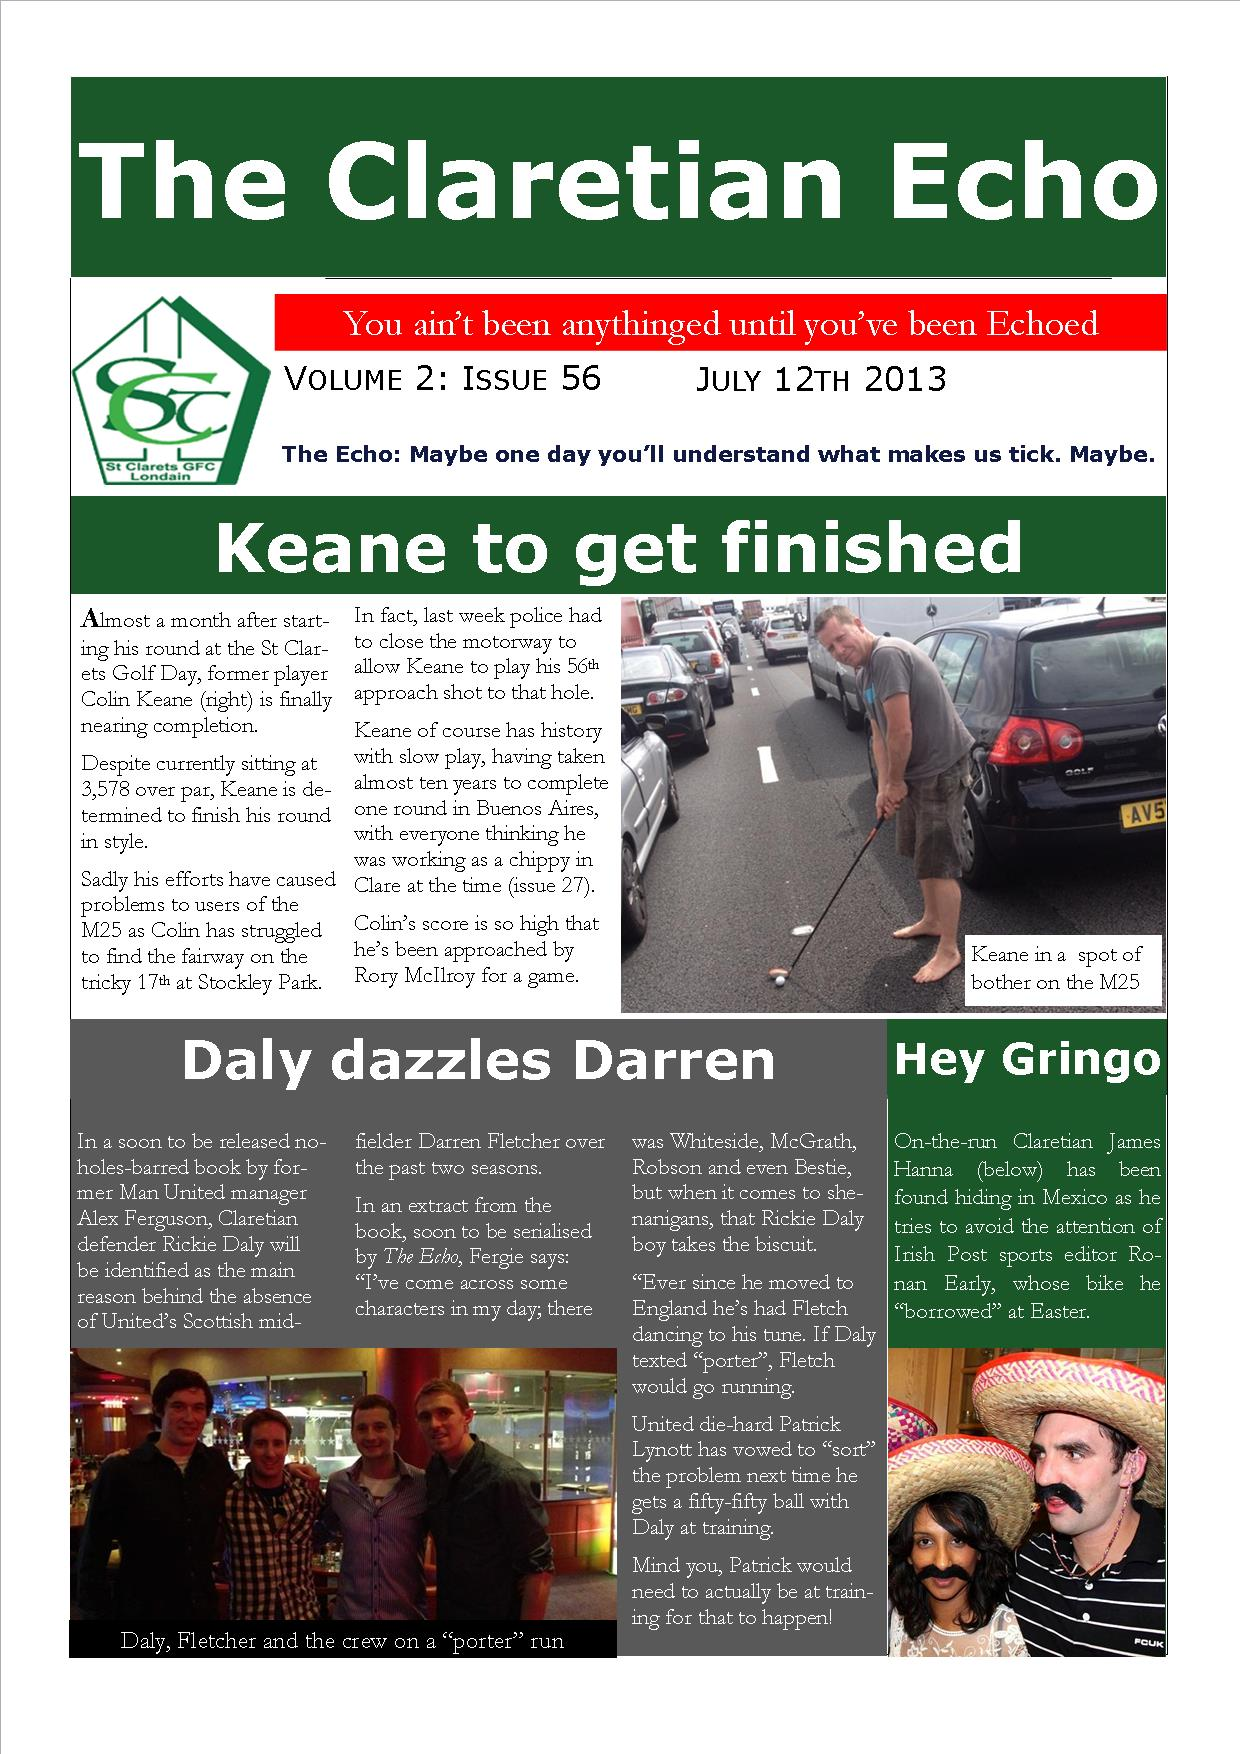 Claretian Echo Issue 56. The weekly newsletter from St Clarets GFC in London. London's best GAA club. A Gaelic football club to be proud of.